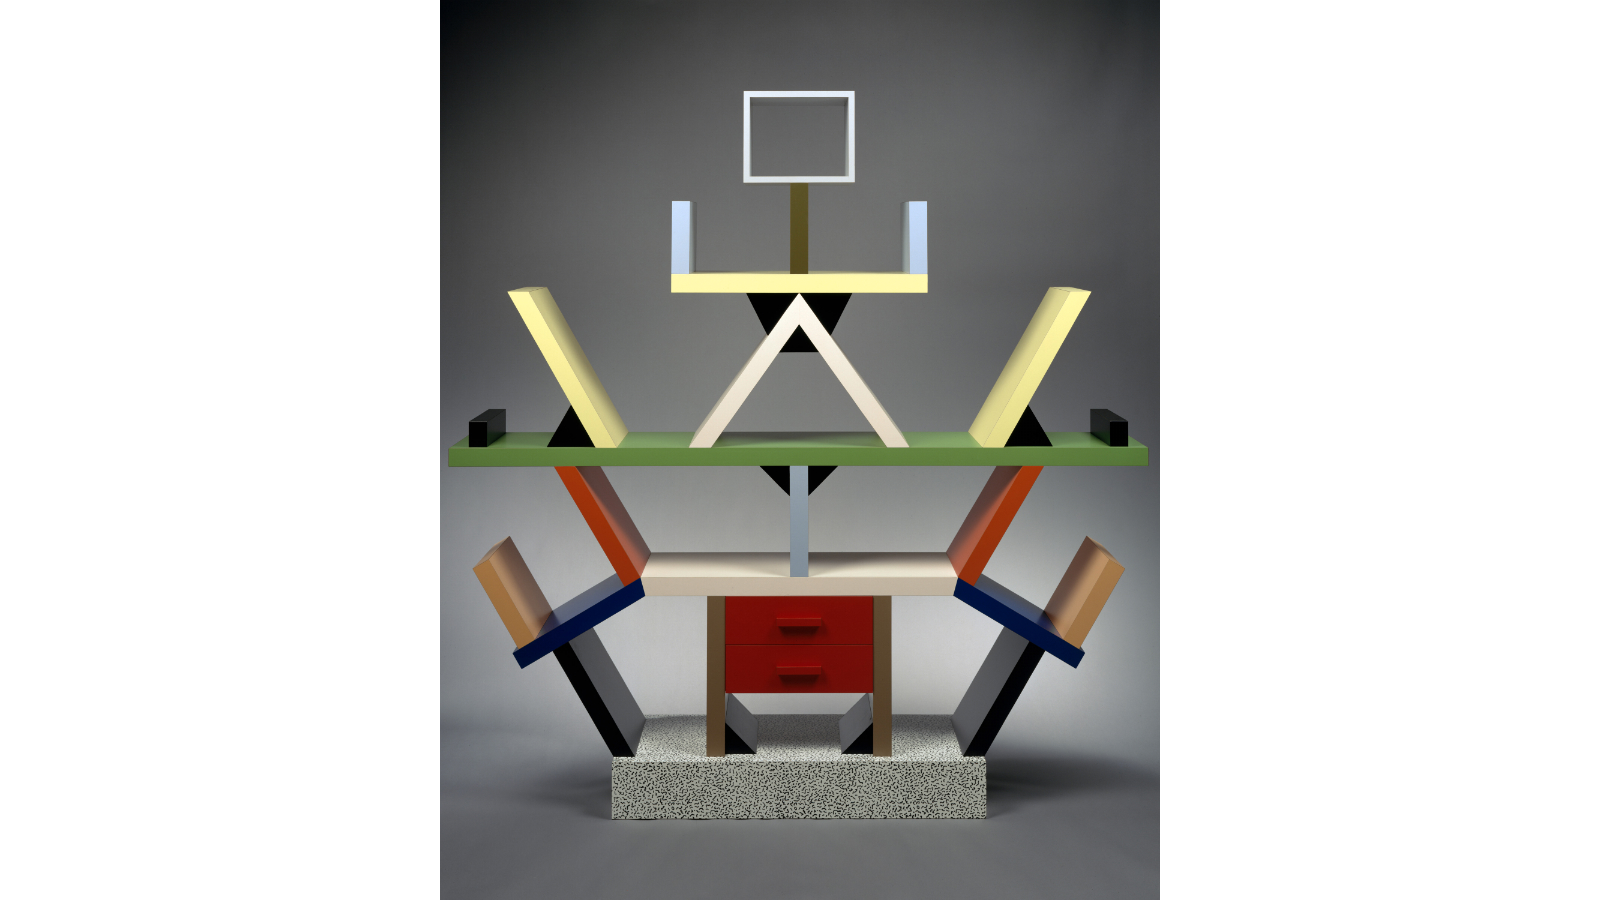 Ettore Sottsass: The genius who designed the 1980s - CNN Style